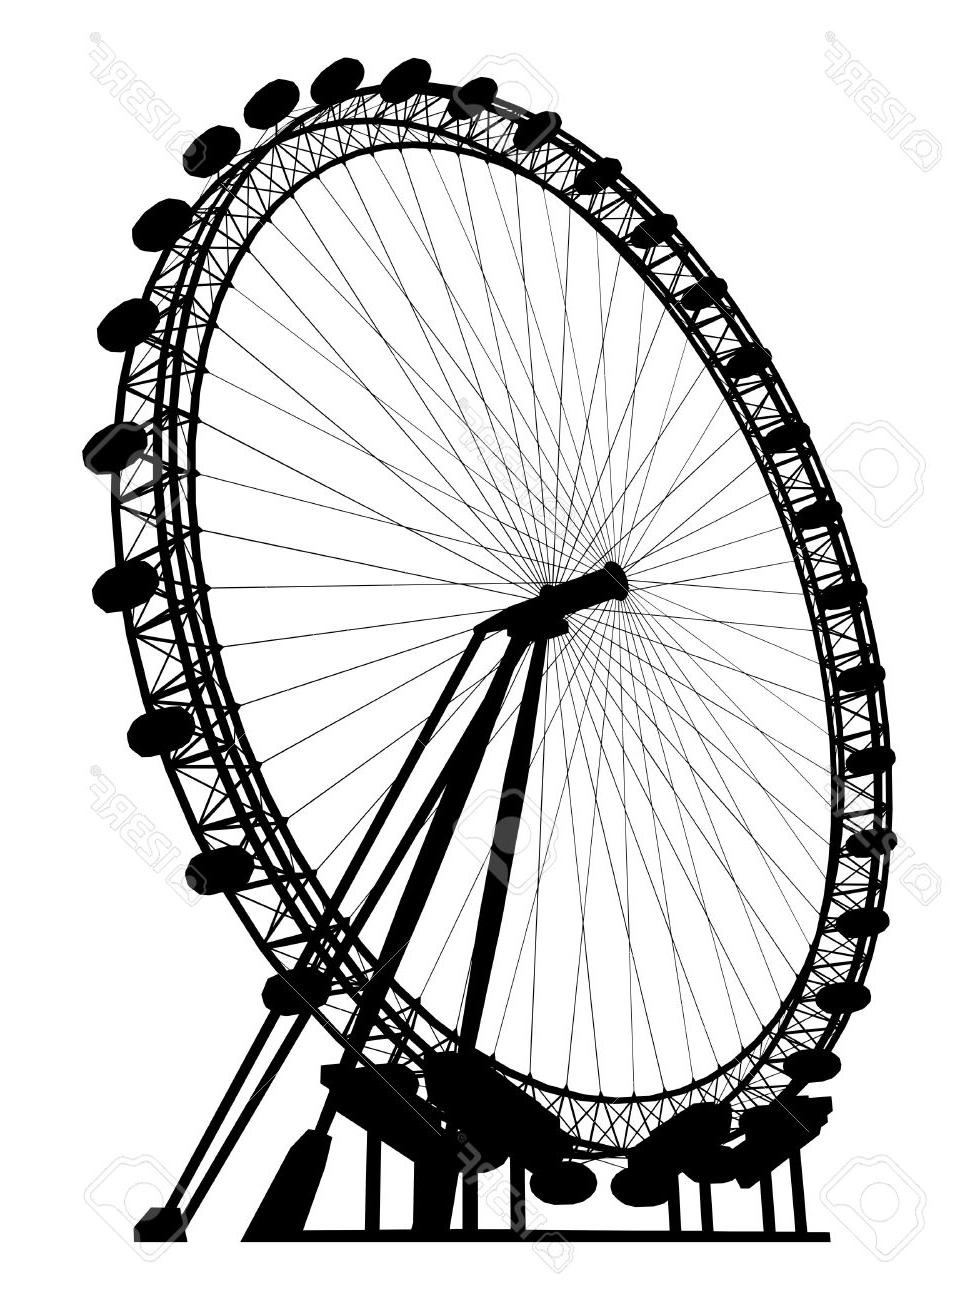 ferris wheel silhouette clip art at getdrawings com free for rh getdrawings com wheels clipart wheels clipart black and white